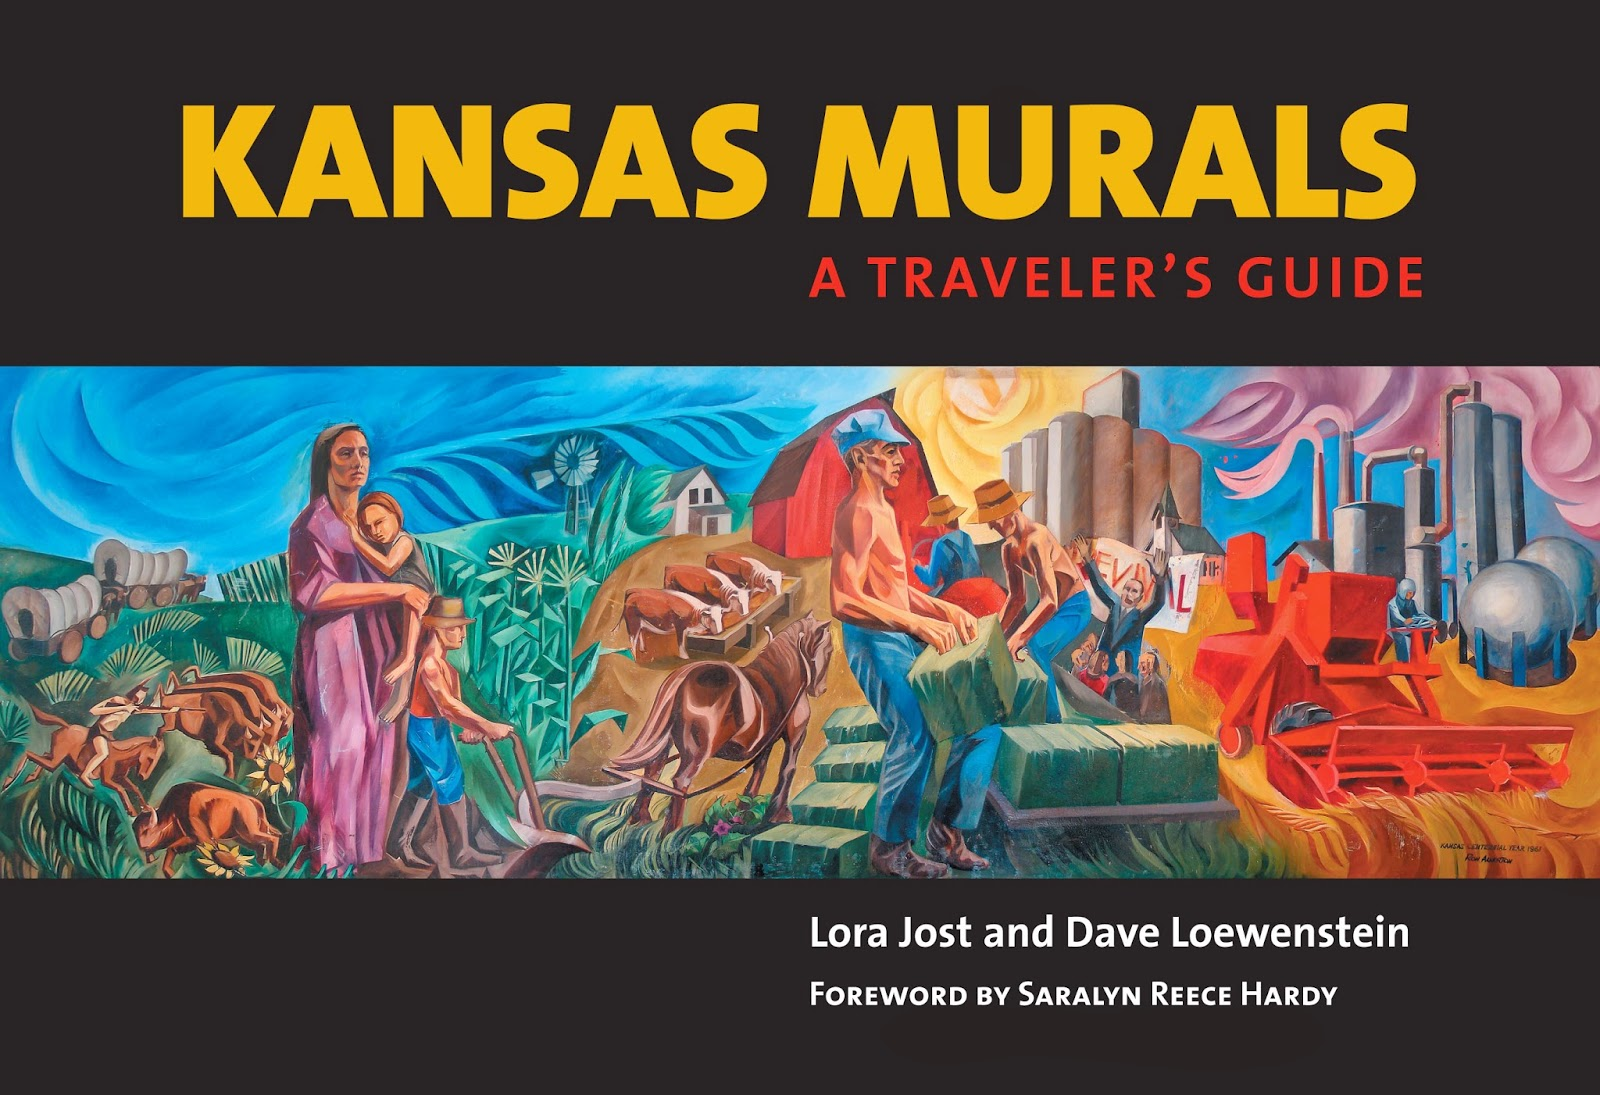 https://kuecprd.ku.edu/~upress/cgi-bin/subjects/kansas/978-0-7006-1469-1.html